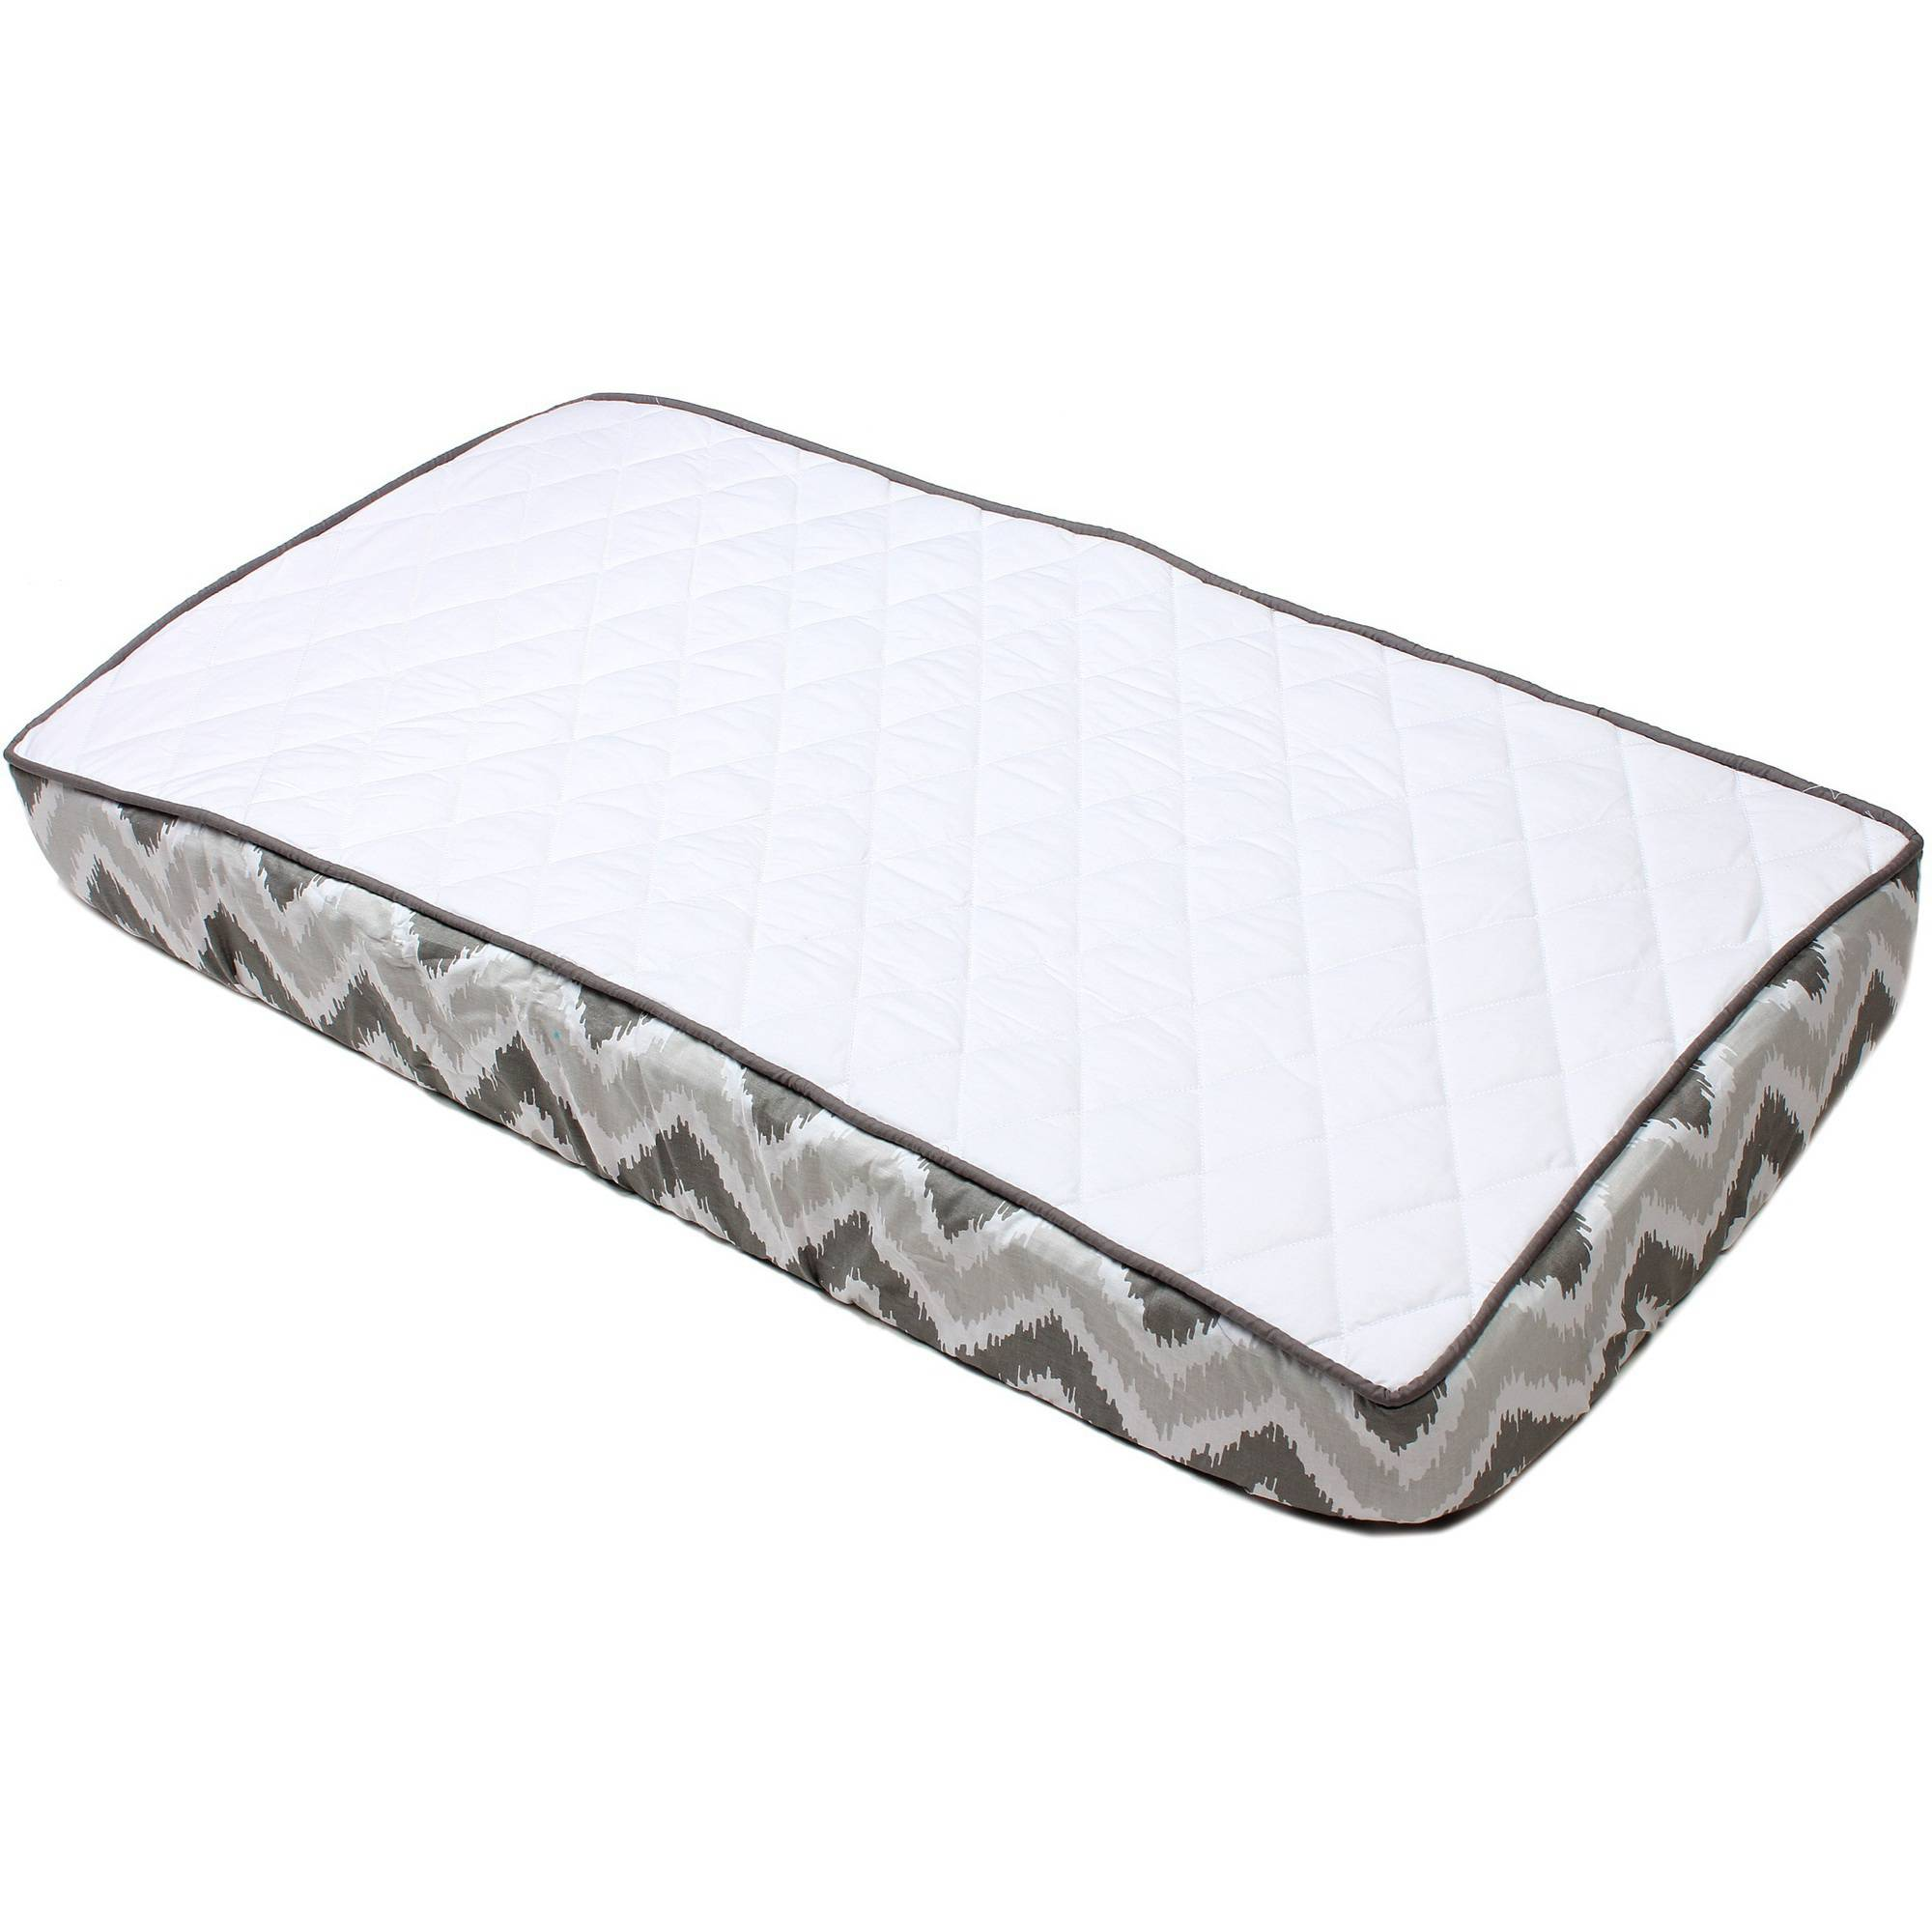 Bacati - MixNMatch Solid White Quilted Top 100% Cotton Percale with Polyester Batting With Grey Zigzag Gussett Diaper Changing Pad Cover, Grey